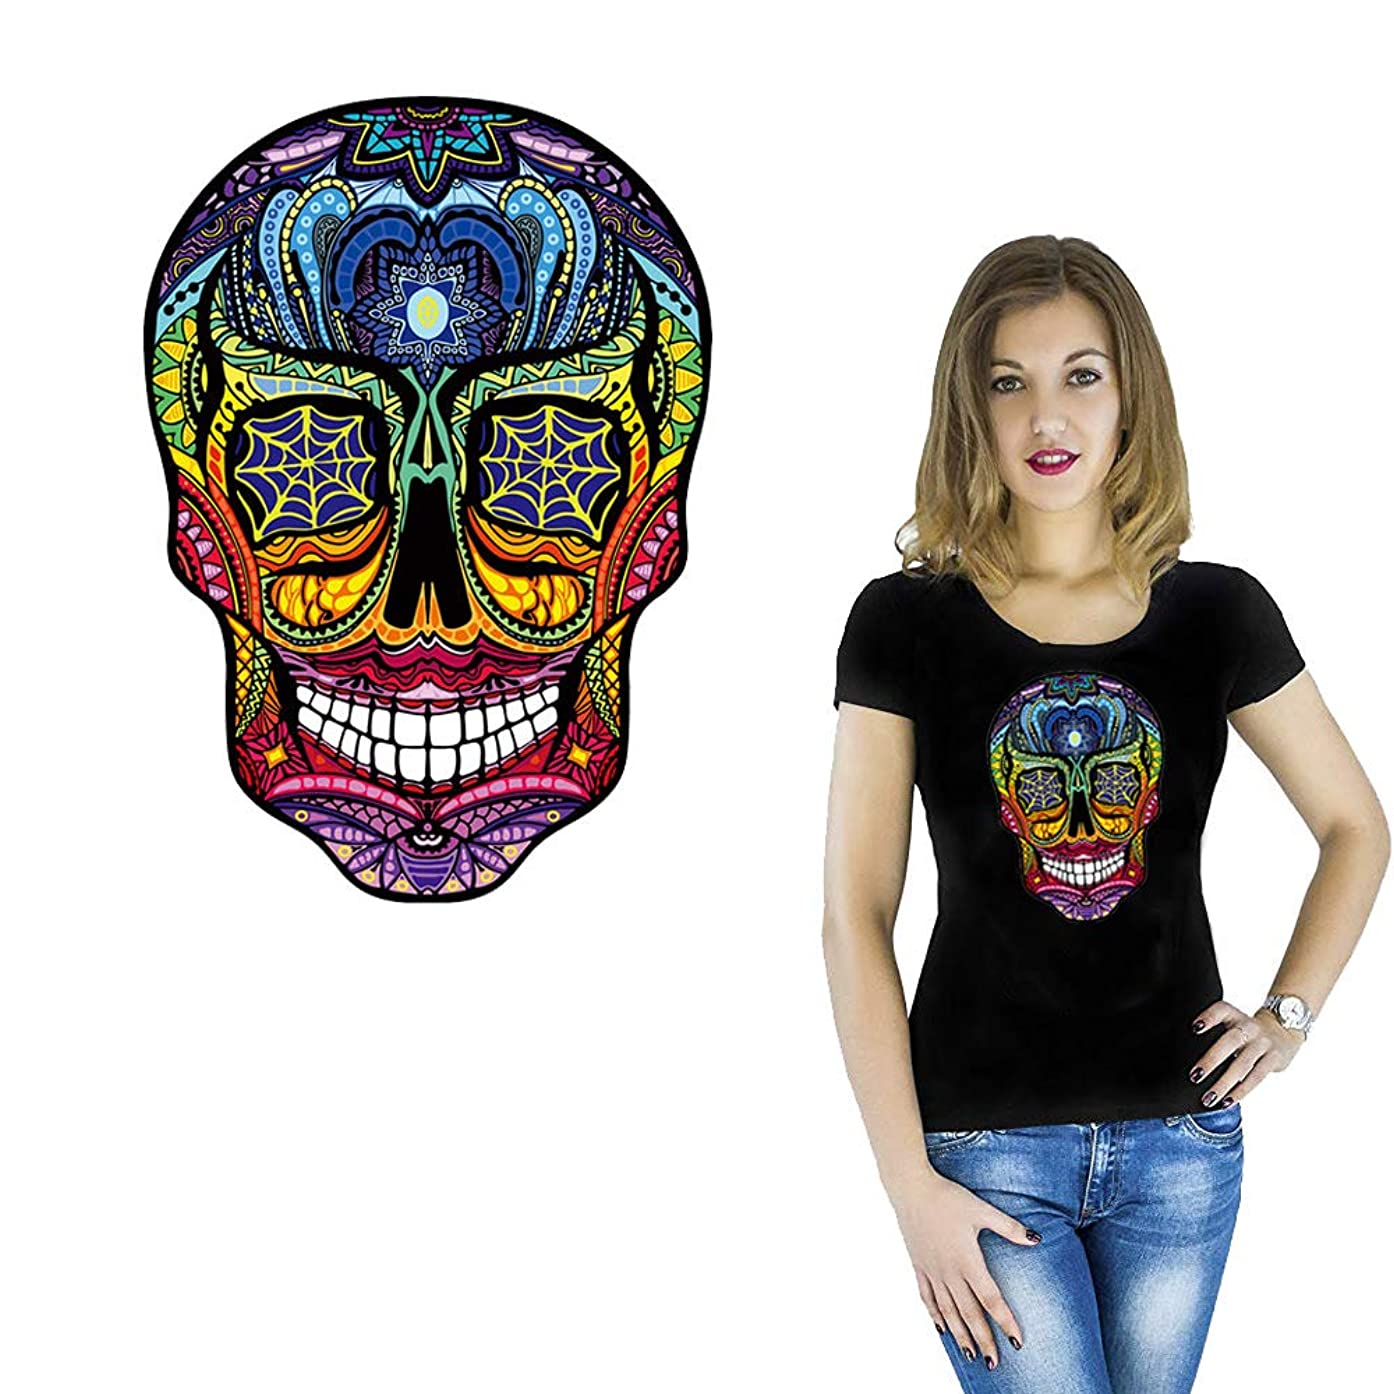 Skull Iron on Patches Summer New Fashion Clothing T-Shirt Heat Transfer Printed Men Streetwear Swimsuit Bags Different Colorful Decal Personality DIY Washable Sticker Patches for Women Boy Clothes